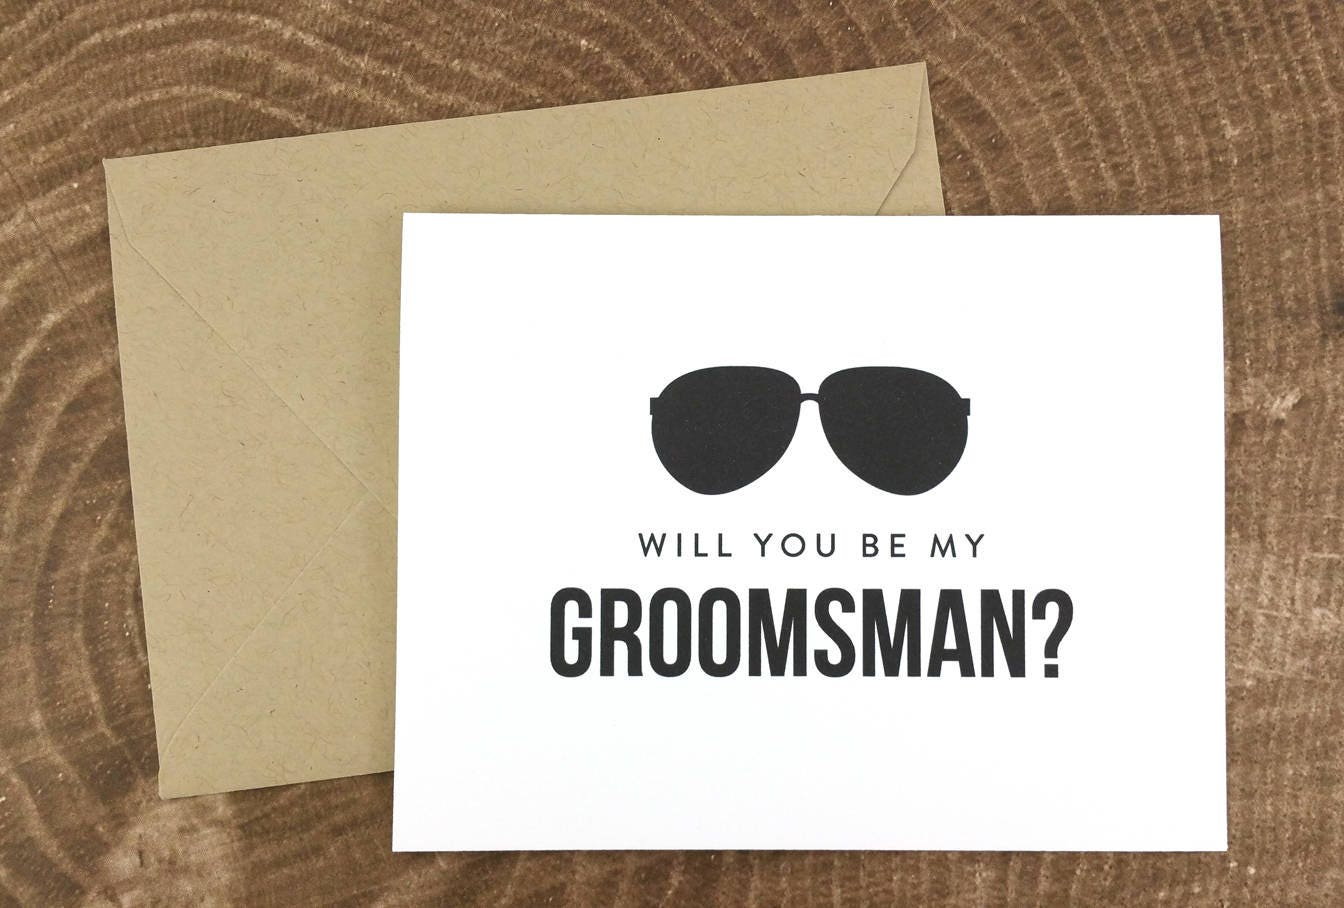 Will you be my groomsman card funny groomsman card fps0006 junglespirit Image collections